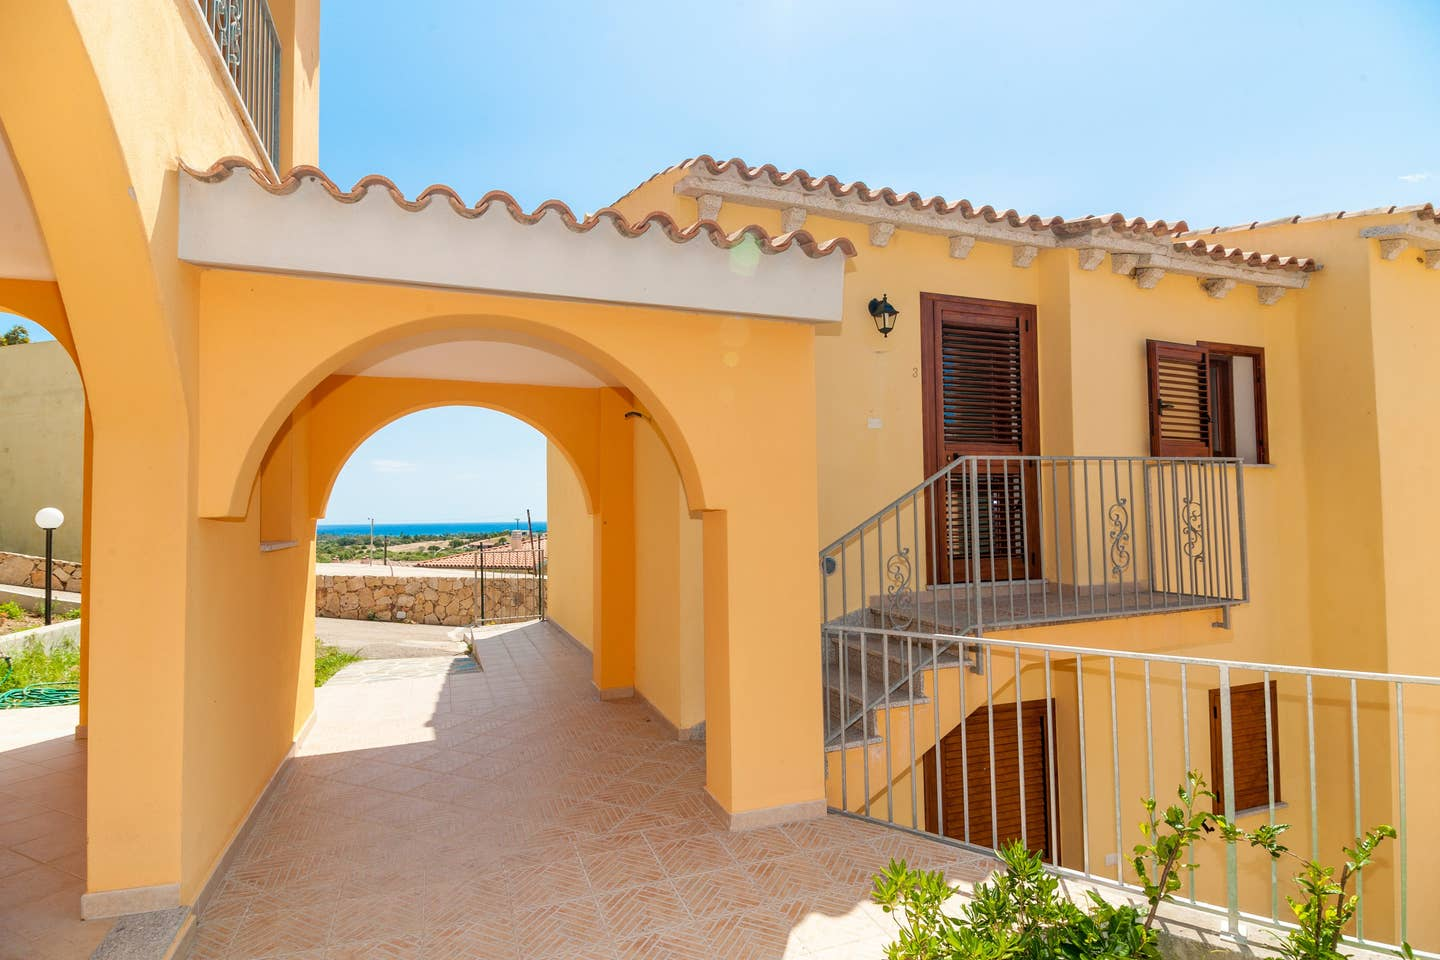 Apartment Bilocale Corte di Gallura 5 photo 18352756